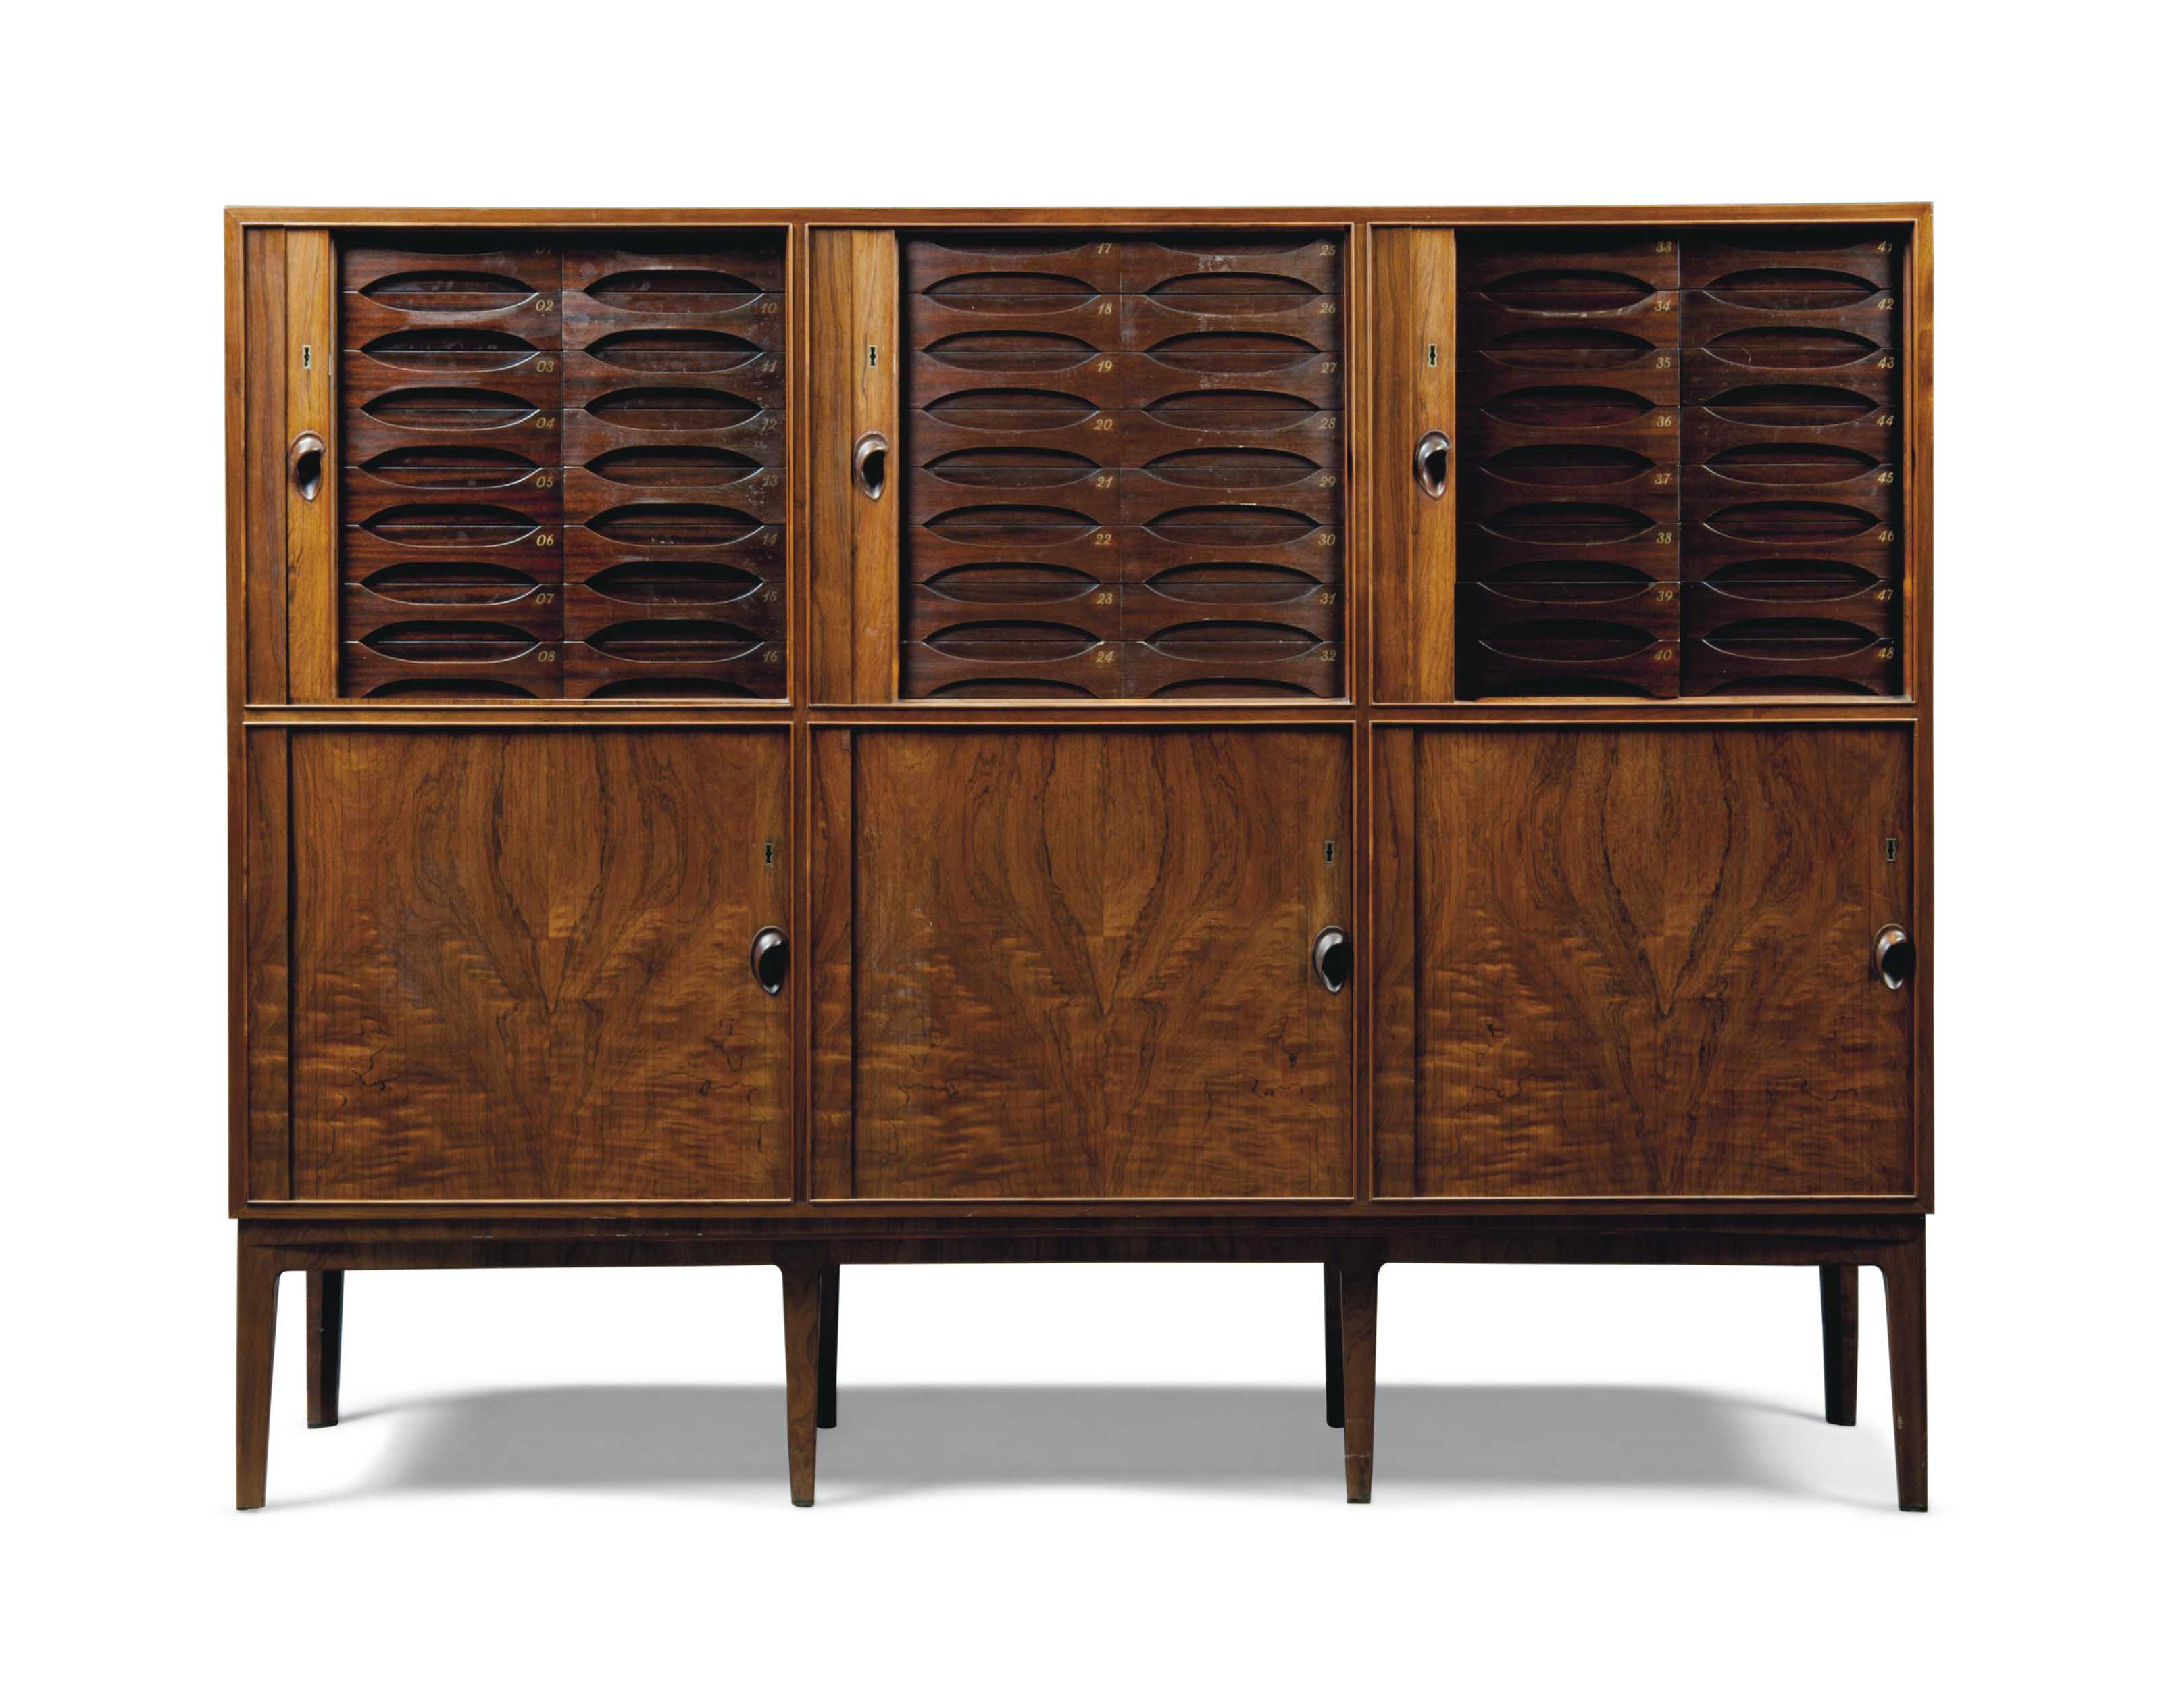 AN OLE WANSCHER (1903-1985), ATTRIBUTED, ROSEWOOD CABINET WITH TAMBOUR SLIDING DOORS